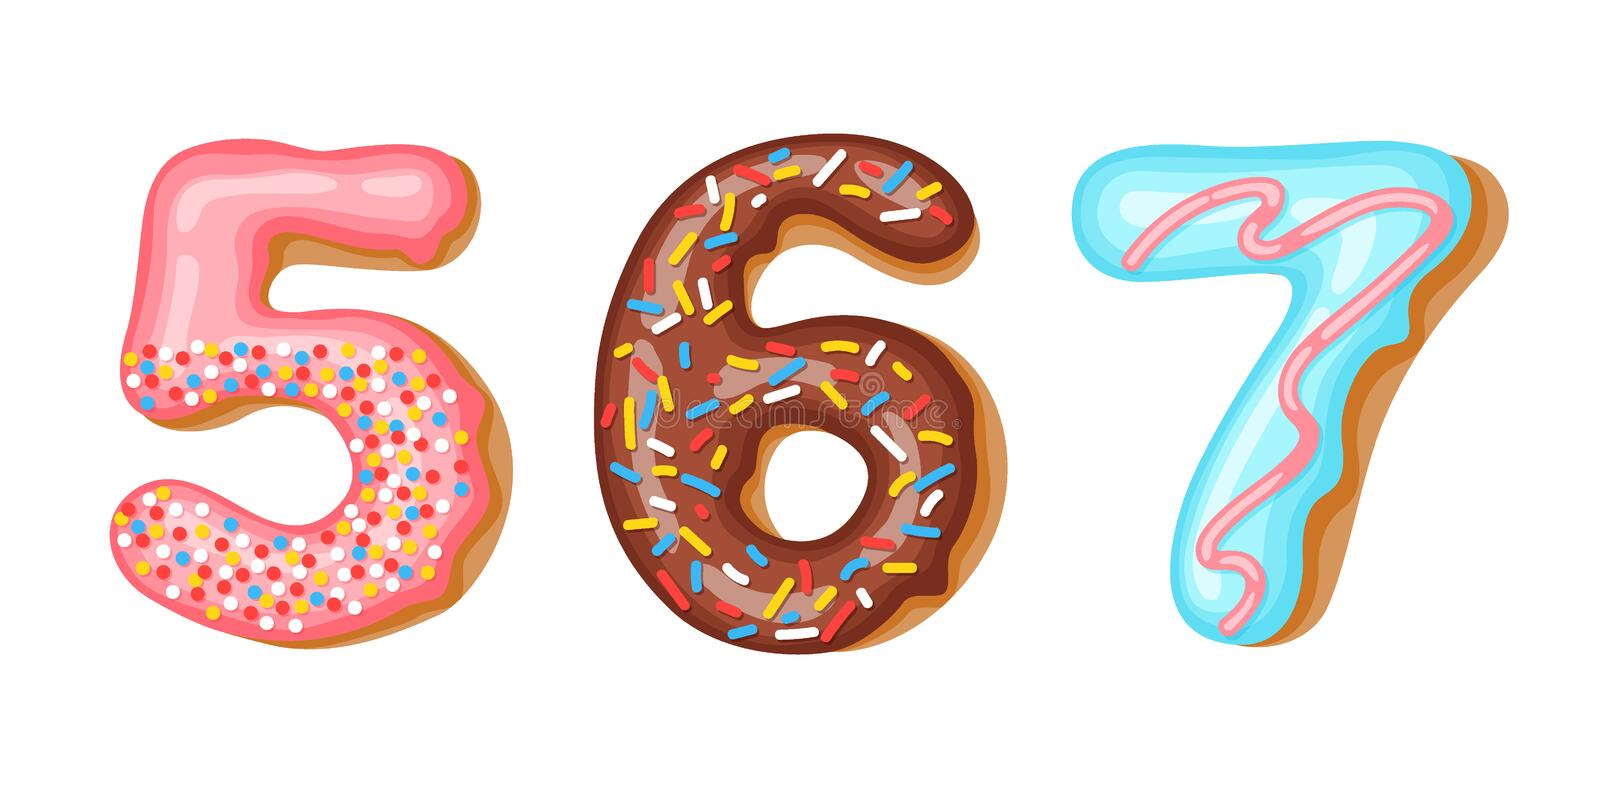 Donut icing numbers digits - 5, 6, 7. Font of donuts. Bakery sweet alphabet. Donut alphabet latters A b C isolated on. White background, vector illustration stock illustration